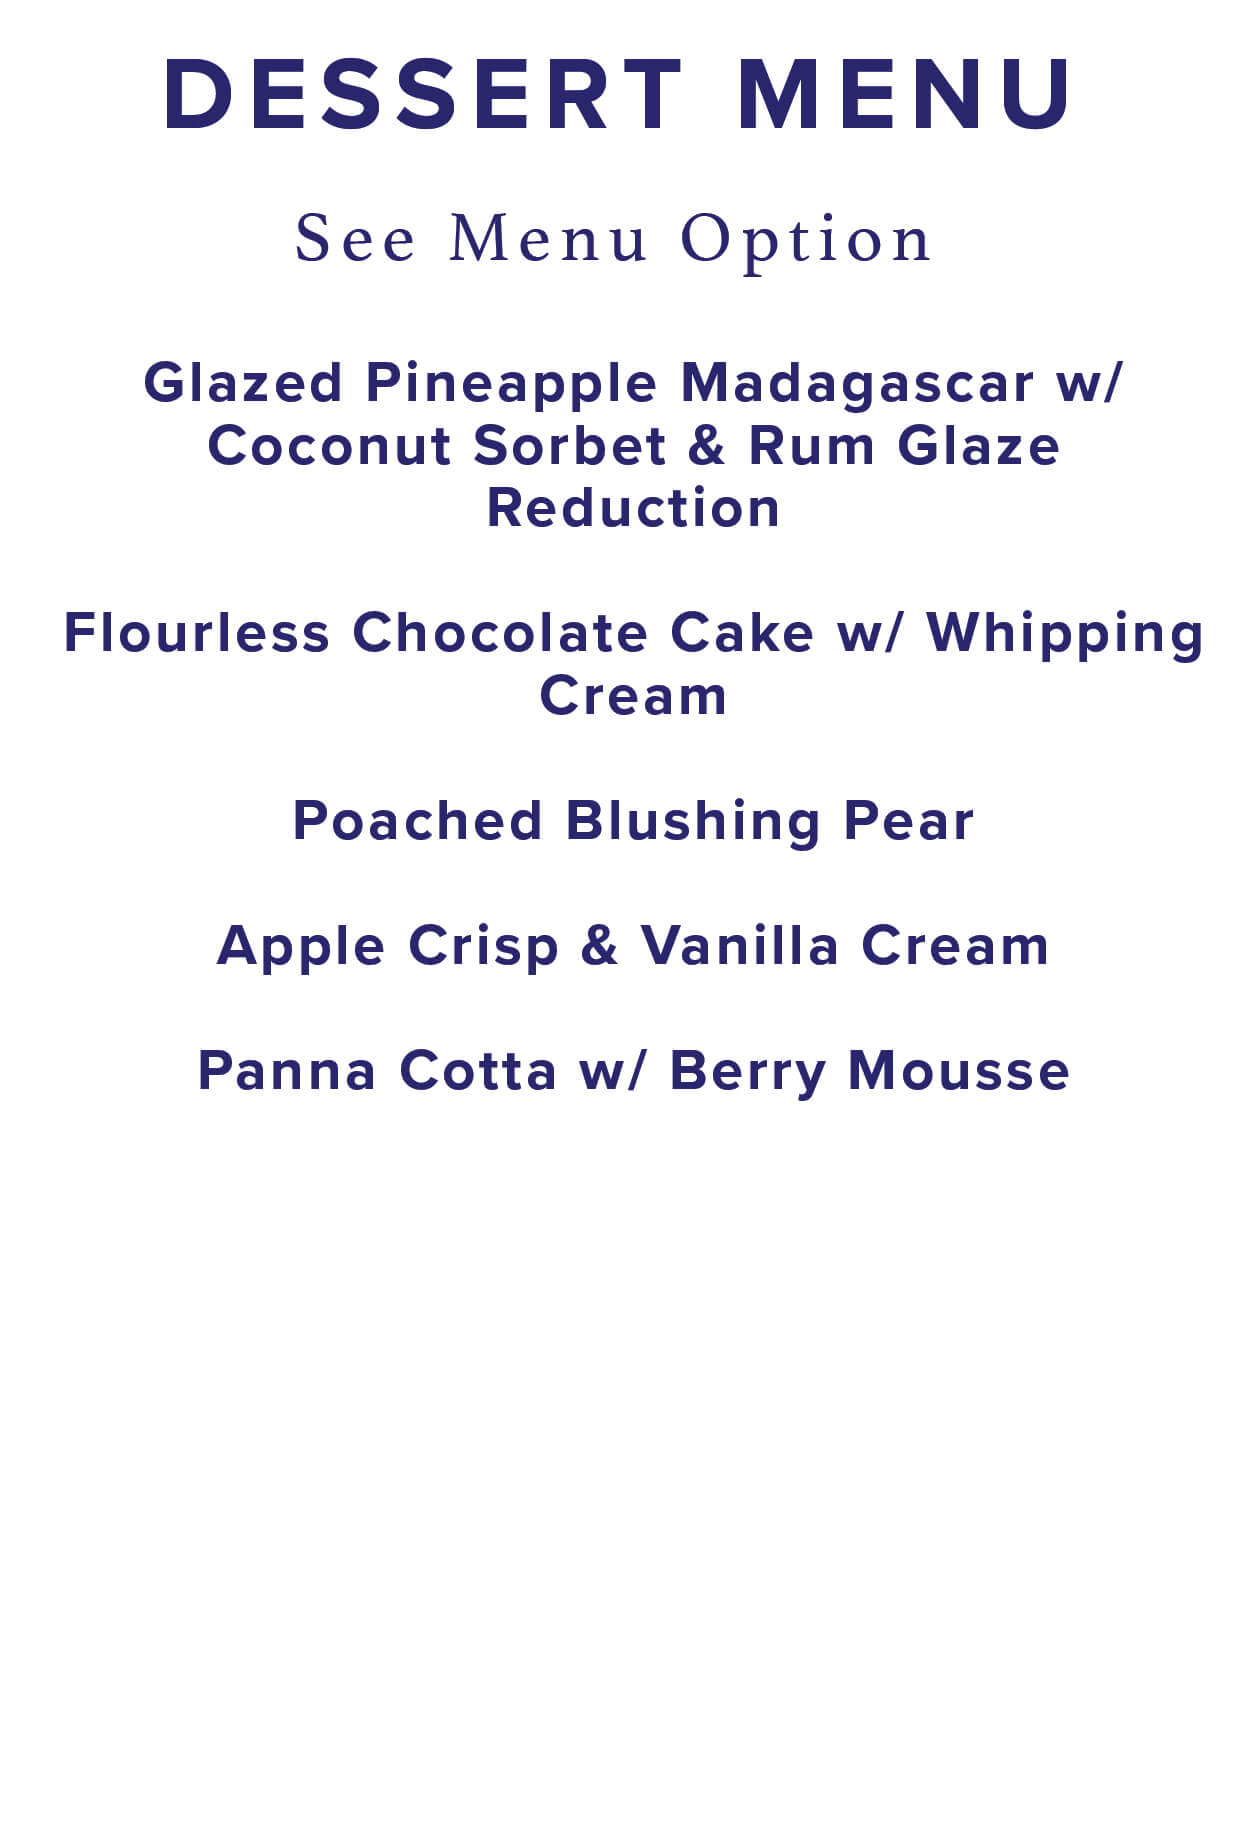 dessert menu selection